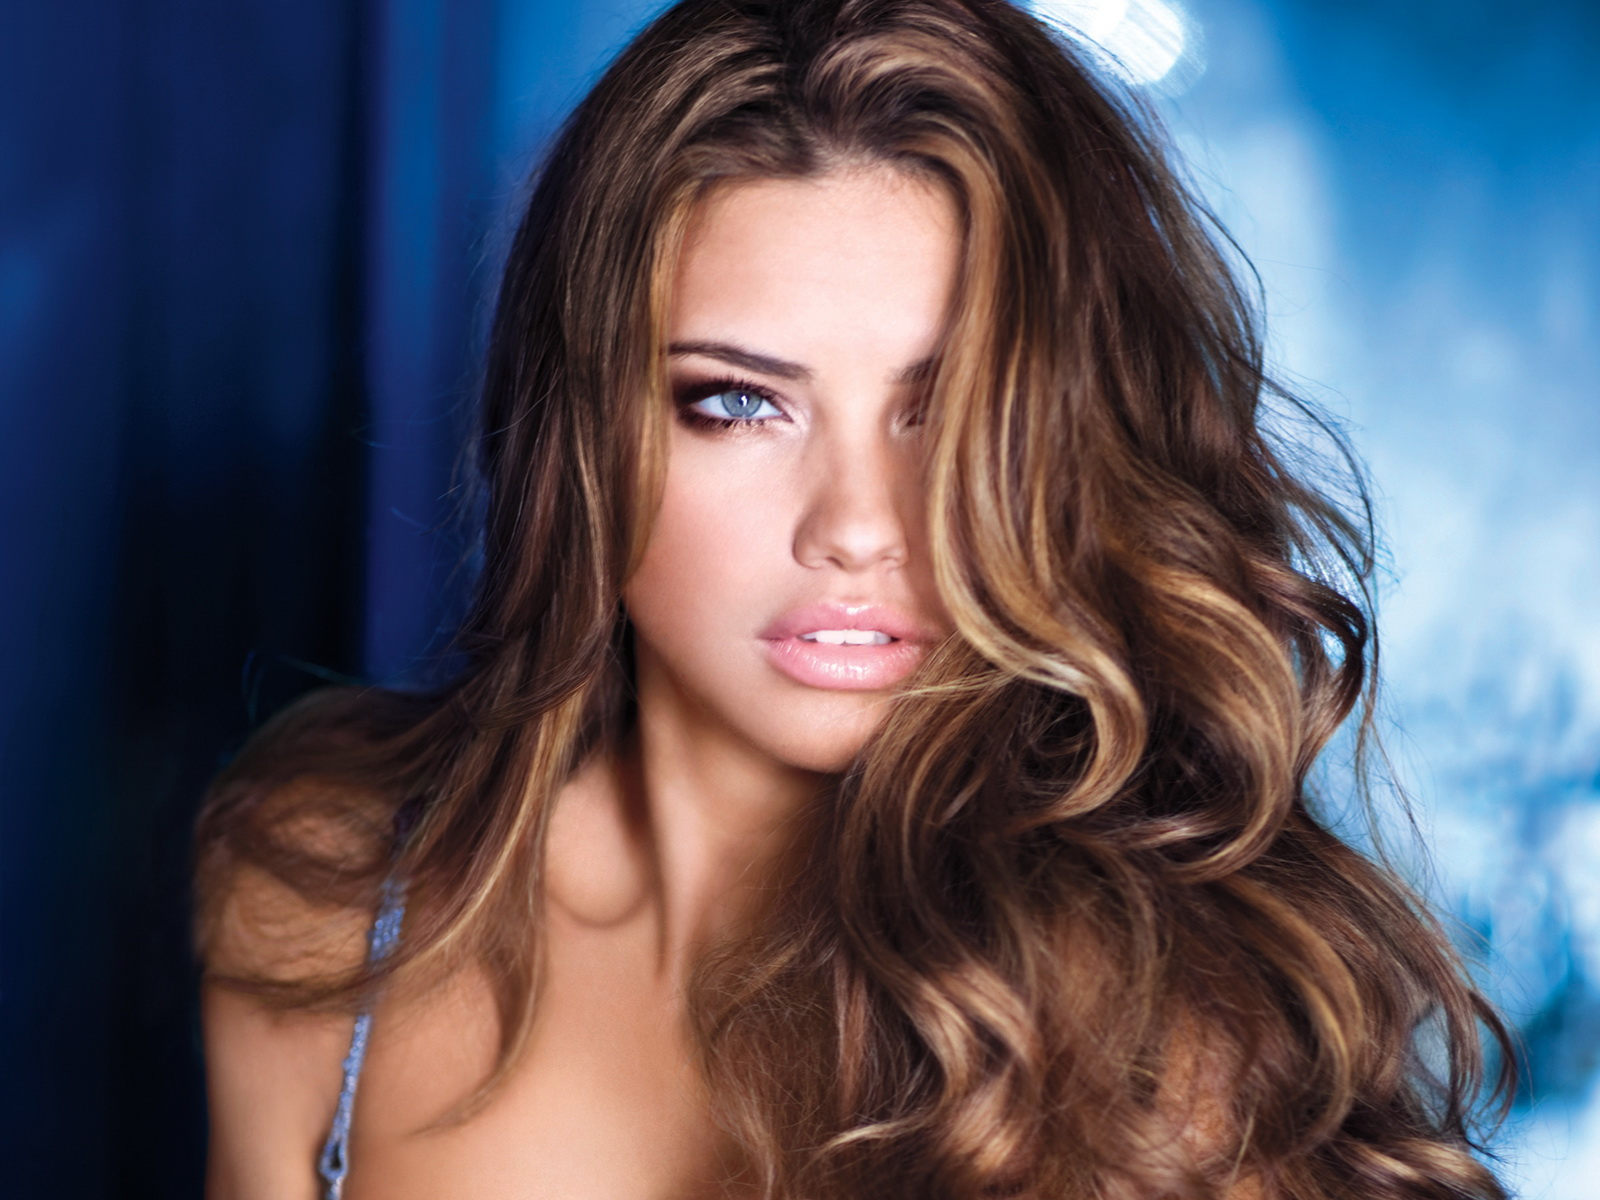 adriana lima beautiful image - photo #24